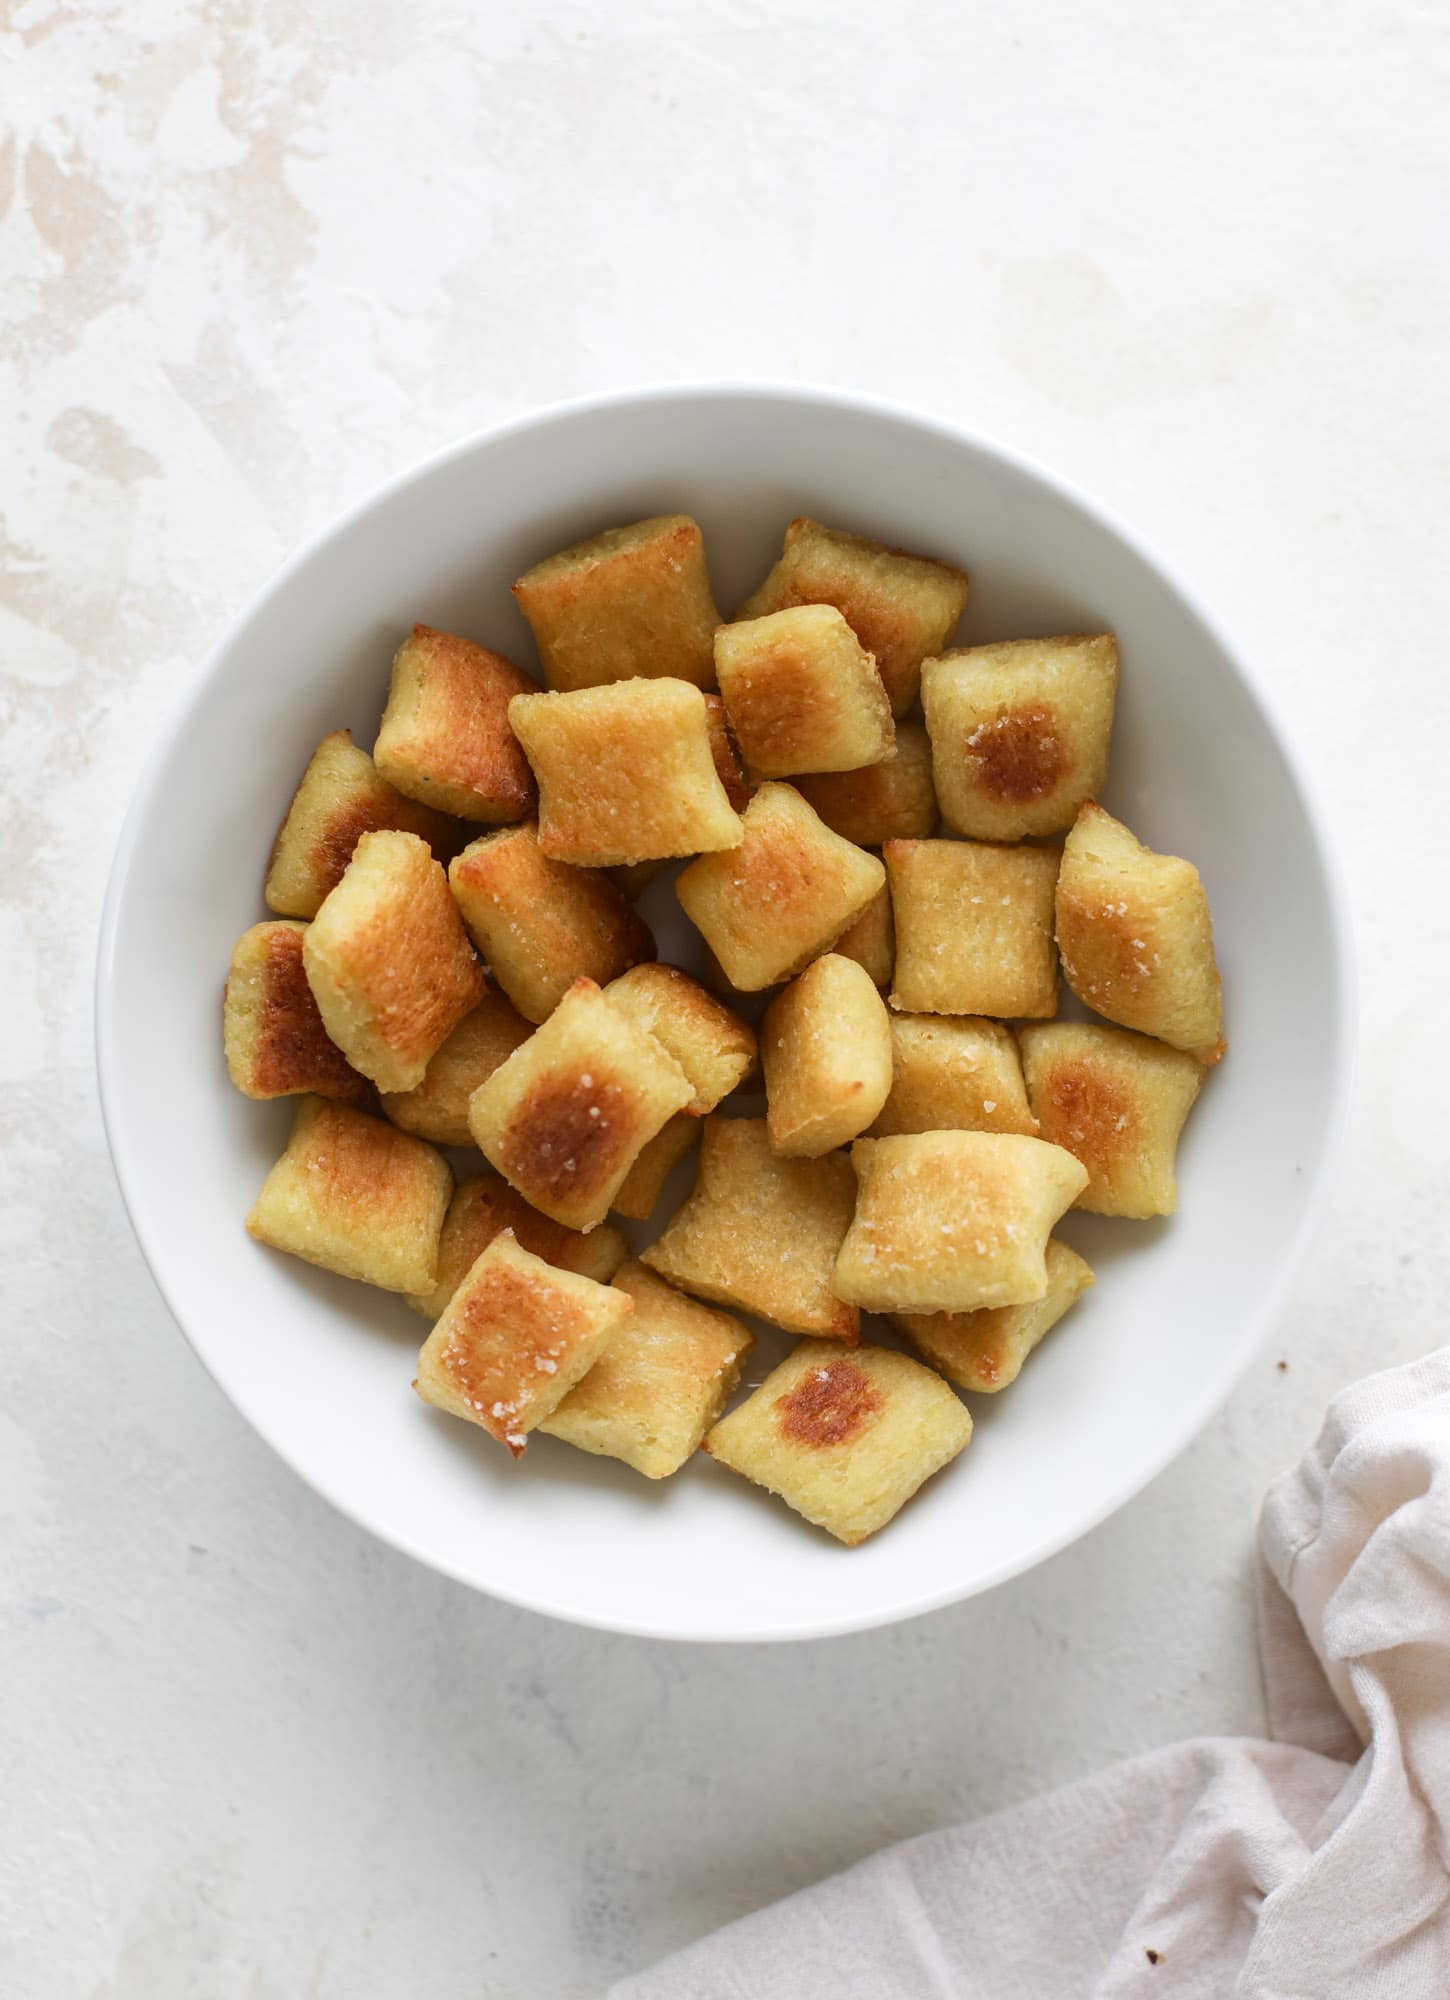 Homemade cauliflower gnocchi that tastes just like the Trader Joe's version! It's made with cauliflower, comes together fast and is super easy! I howsweeteats.com #cauliflower #gnocchi